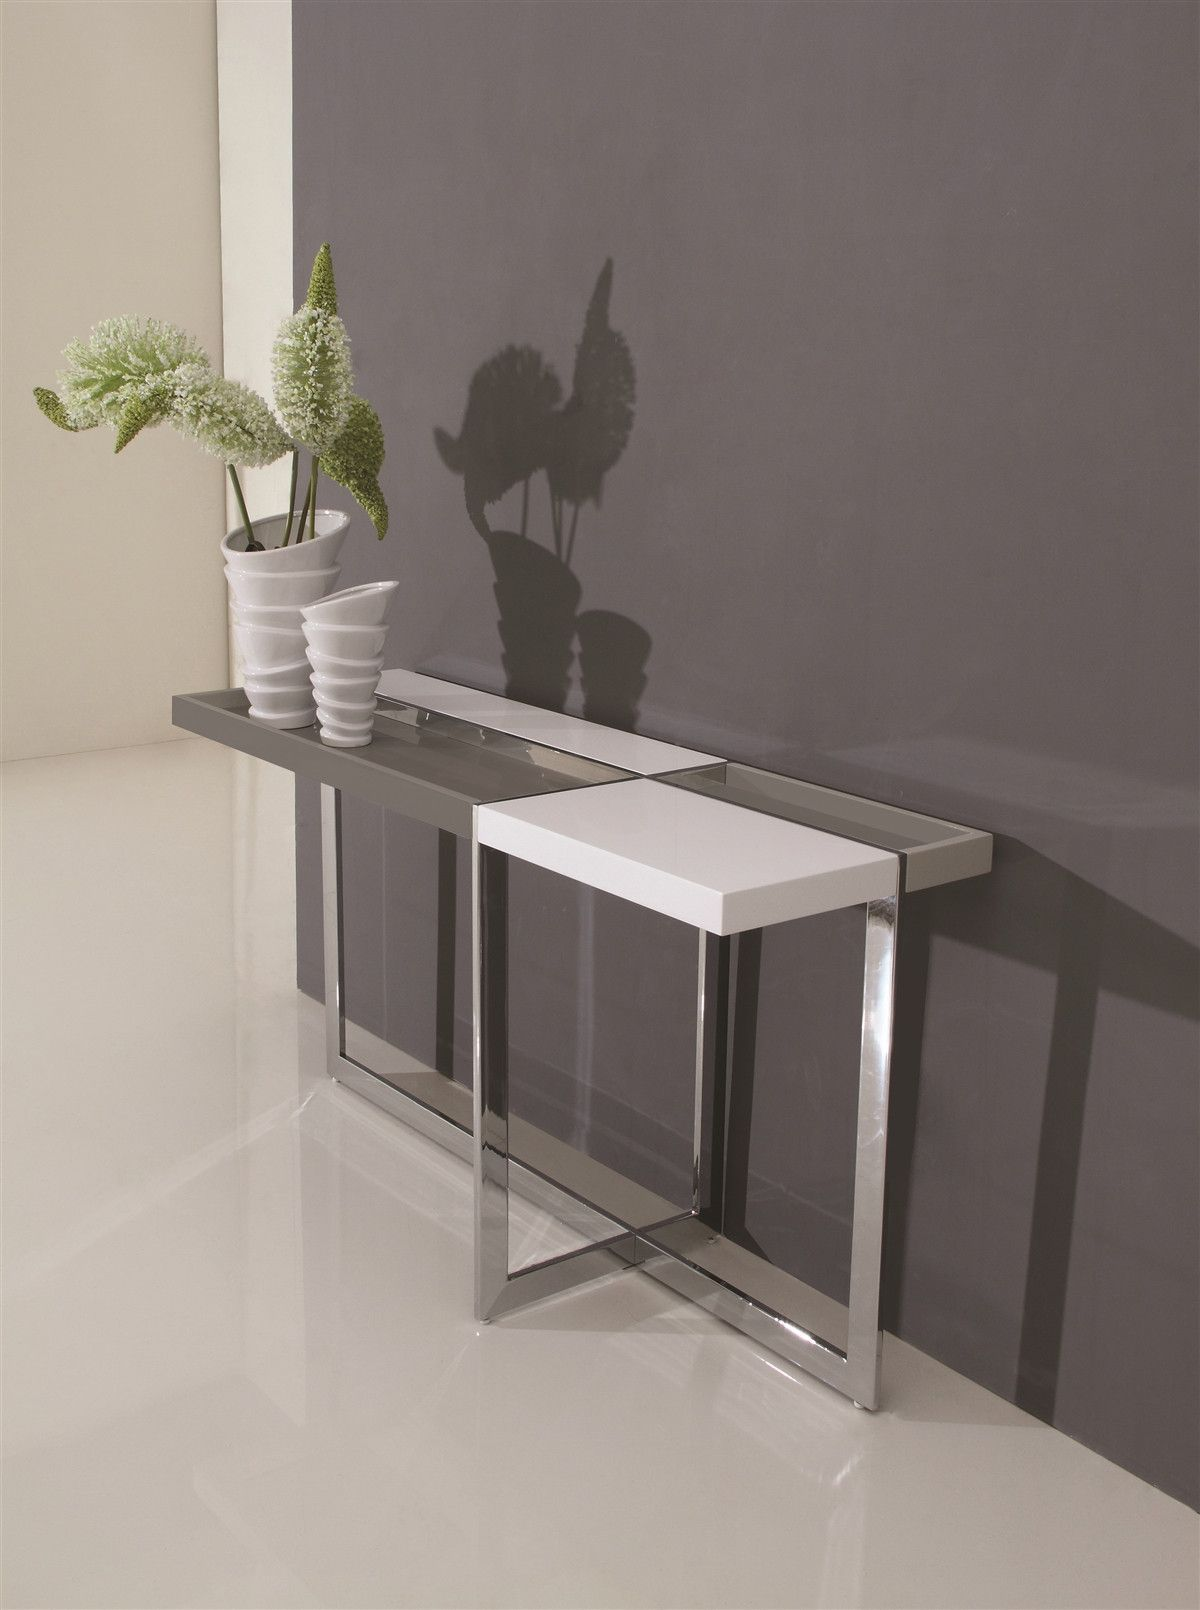 Casabianca domino high gloss white lacquer console table tc